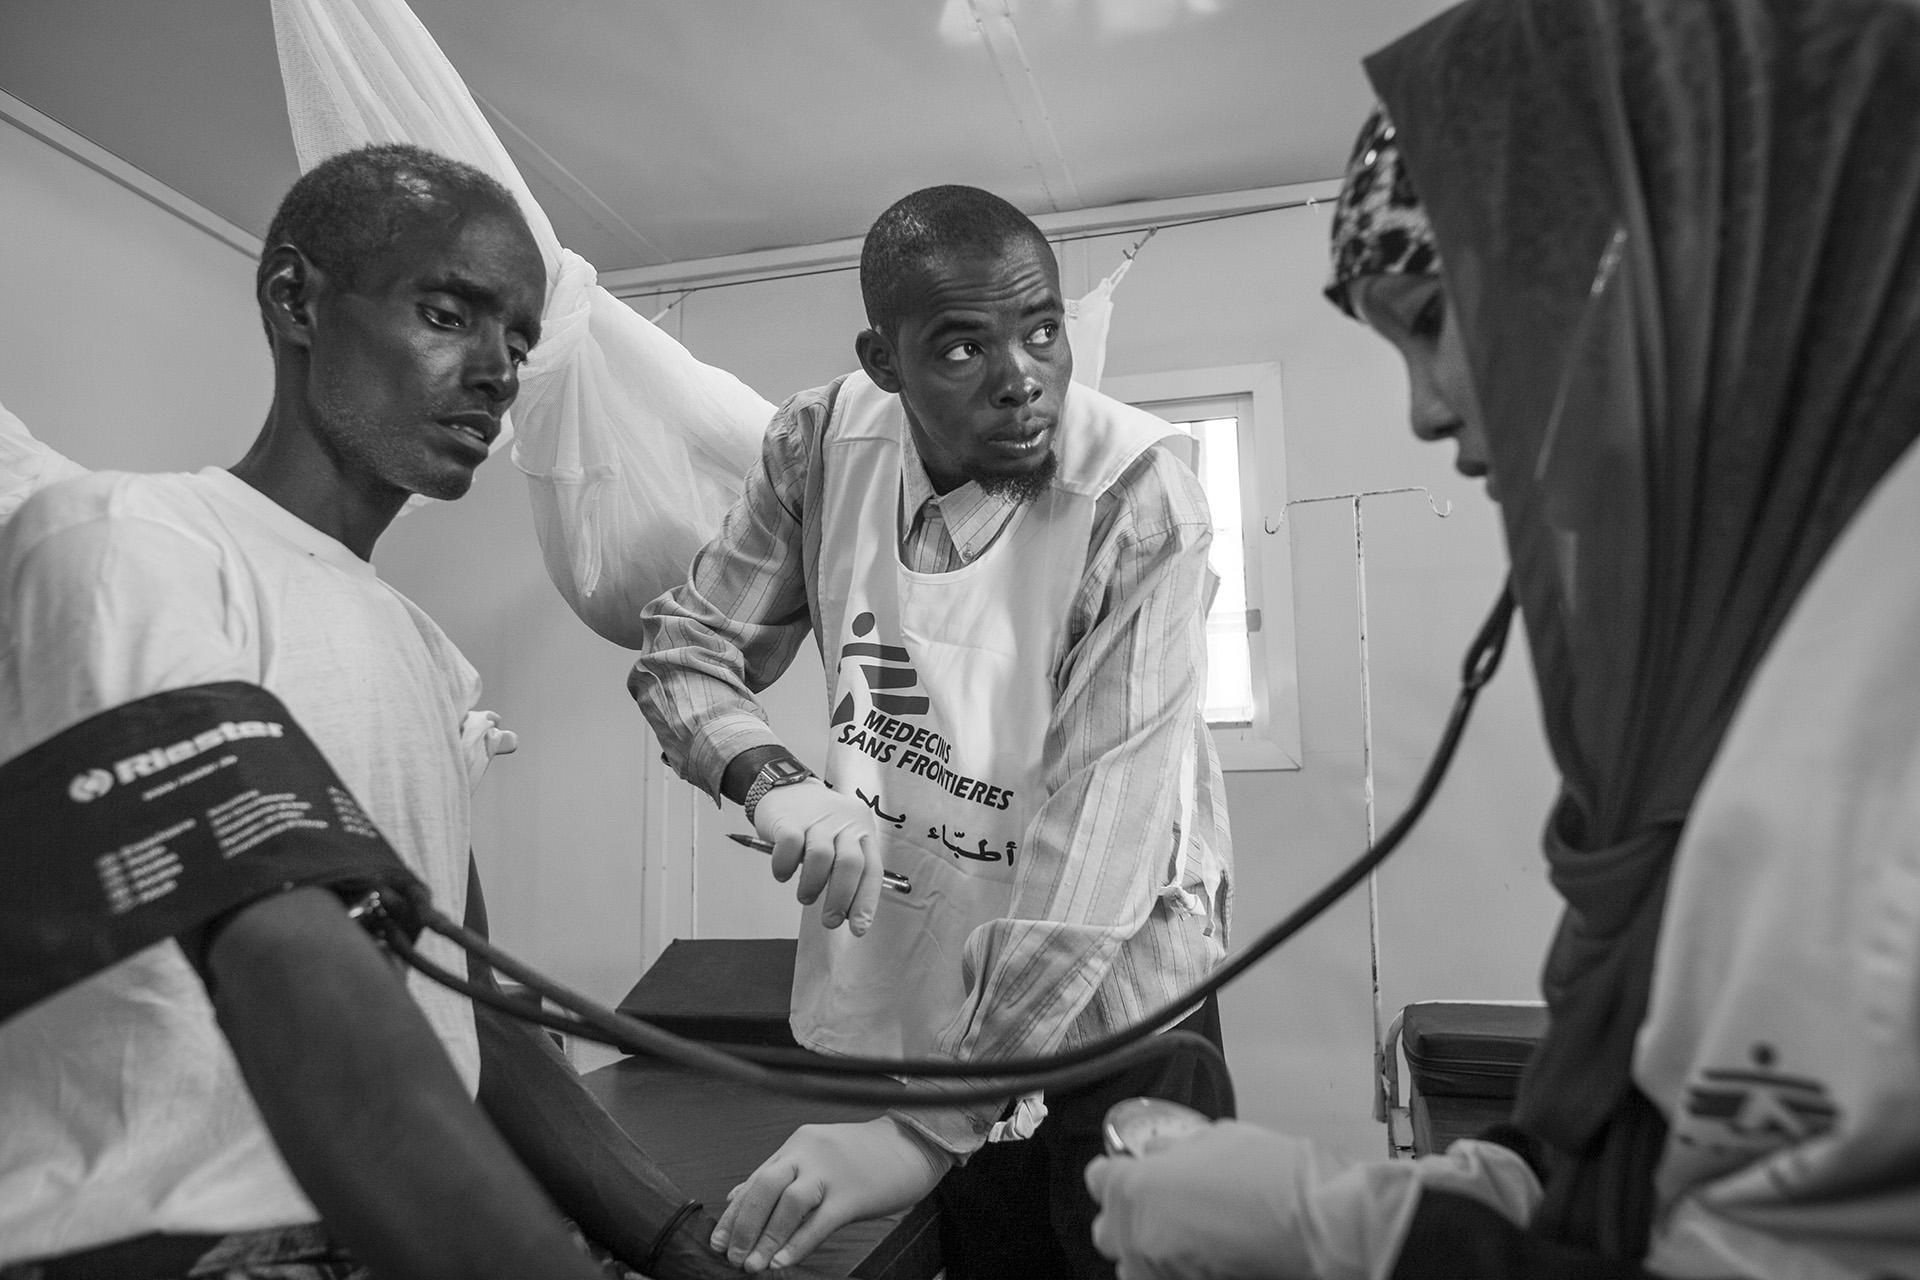 A refugee being treated by MSF (Doctors Without Borders) staff at a reception center in Ahwar on the Yemeni coast. The new arrivals received first aid, food and water on the shore and then transferred to the reception center for a complete medical examination by MSF and assistance from various other organizations.